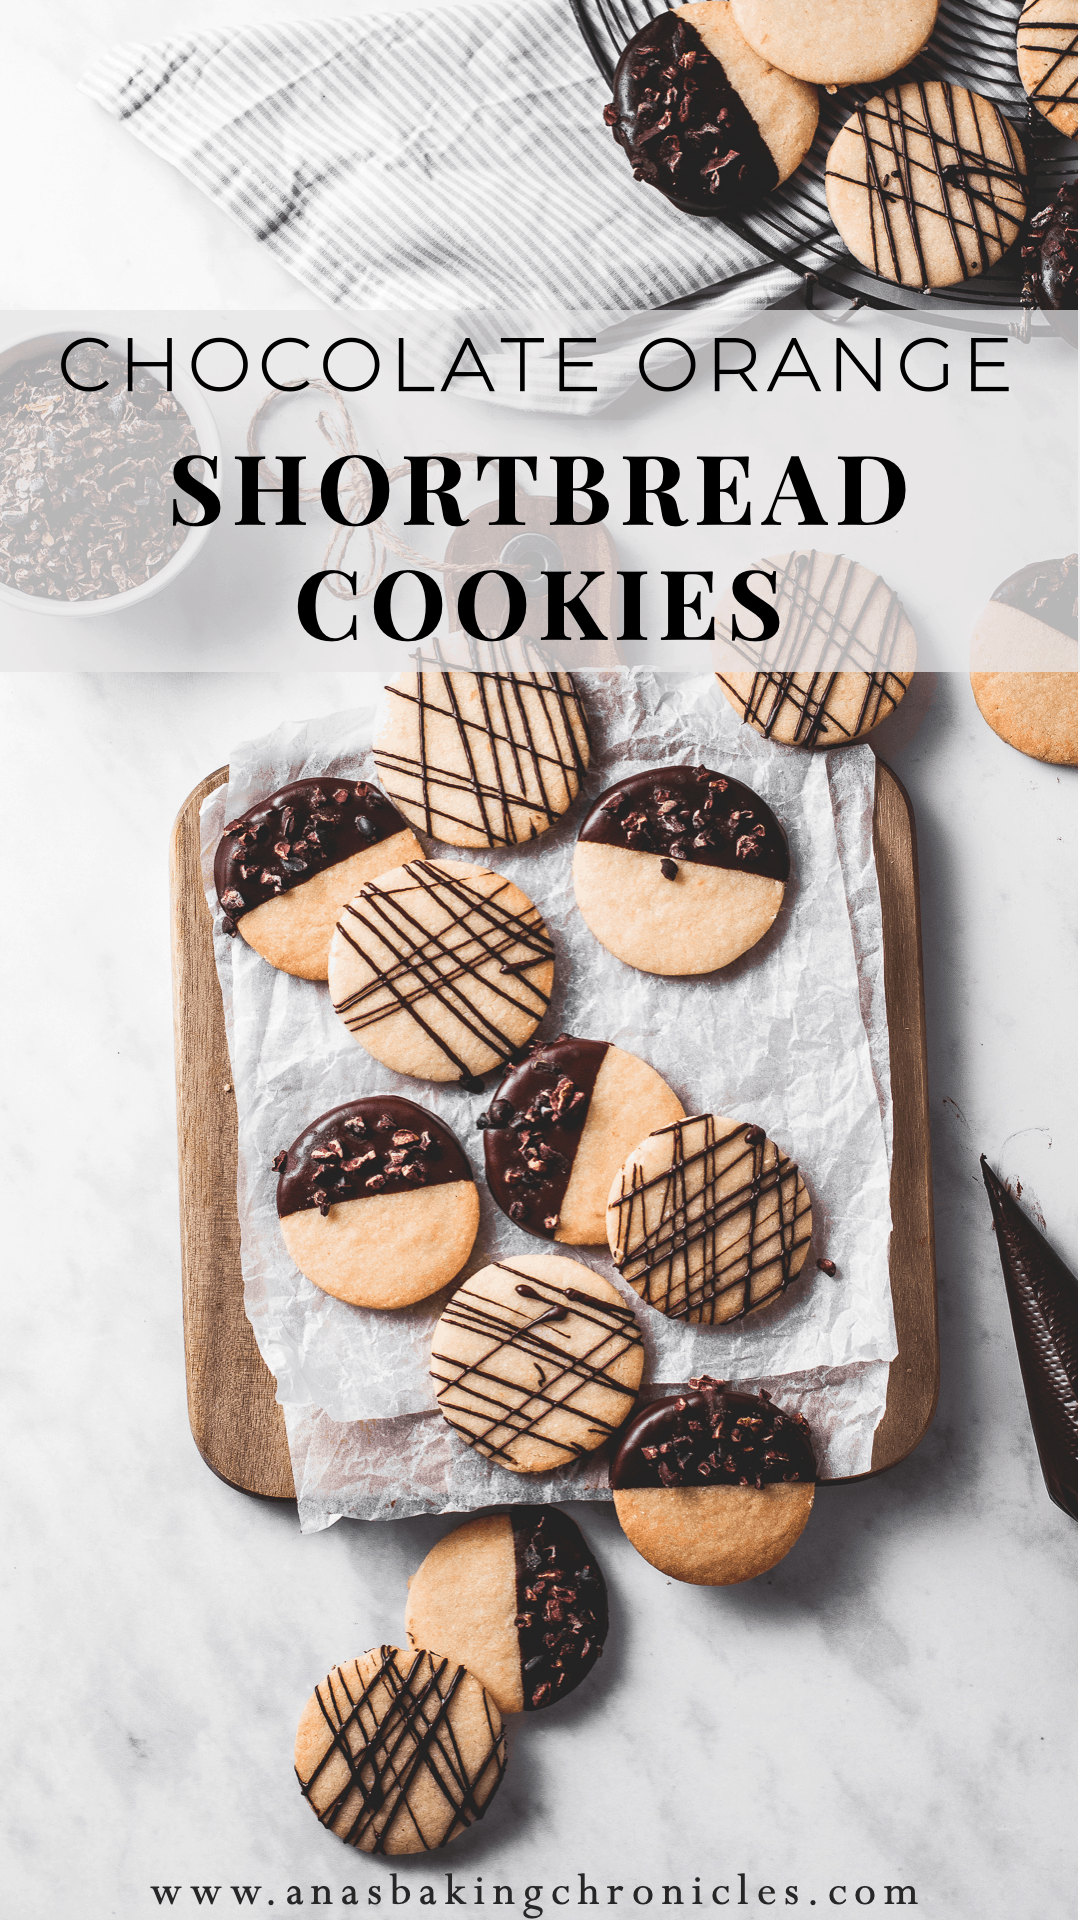 These buttery, melt-in-your-mouth orange shortbread cookies are dipped in chocolate and incredibly easy to make - a classic with a twist!⎪www.anasbakingchronicles.com